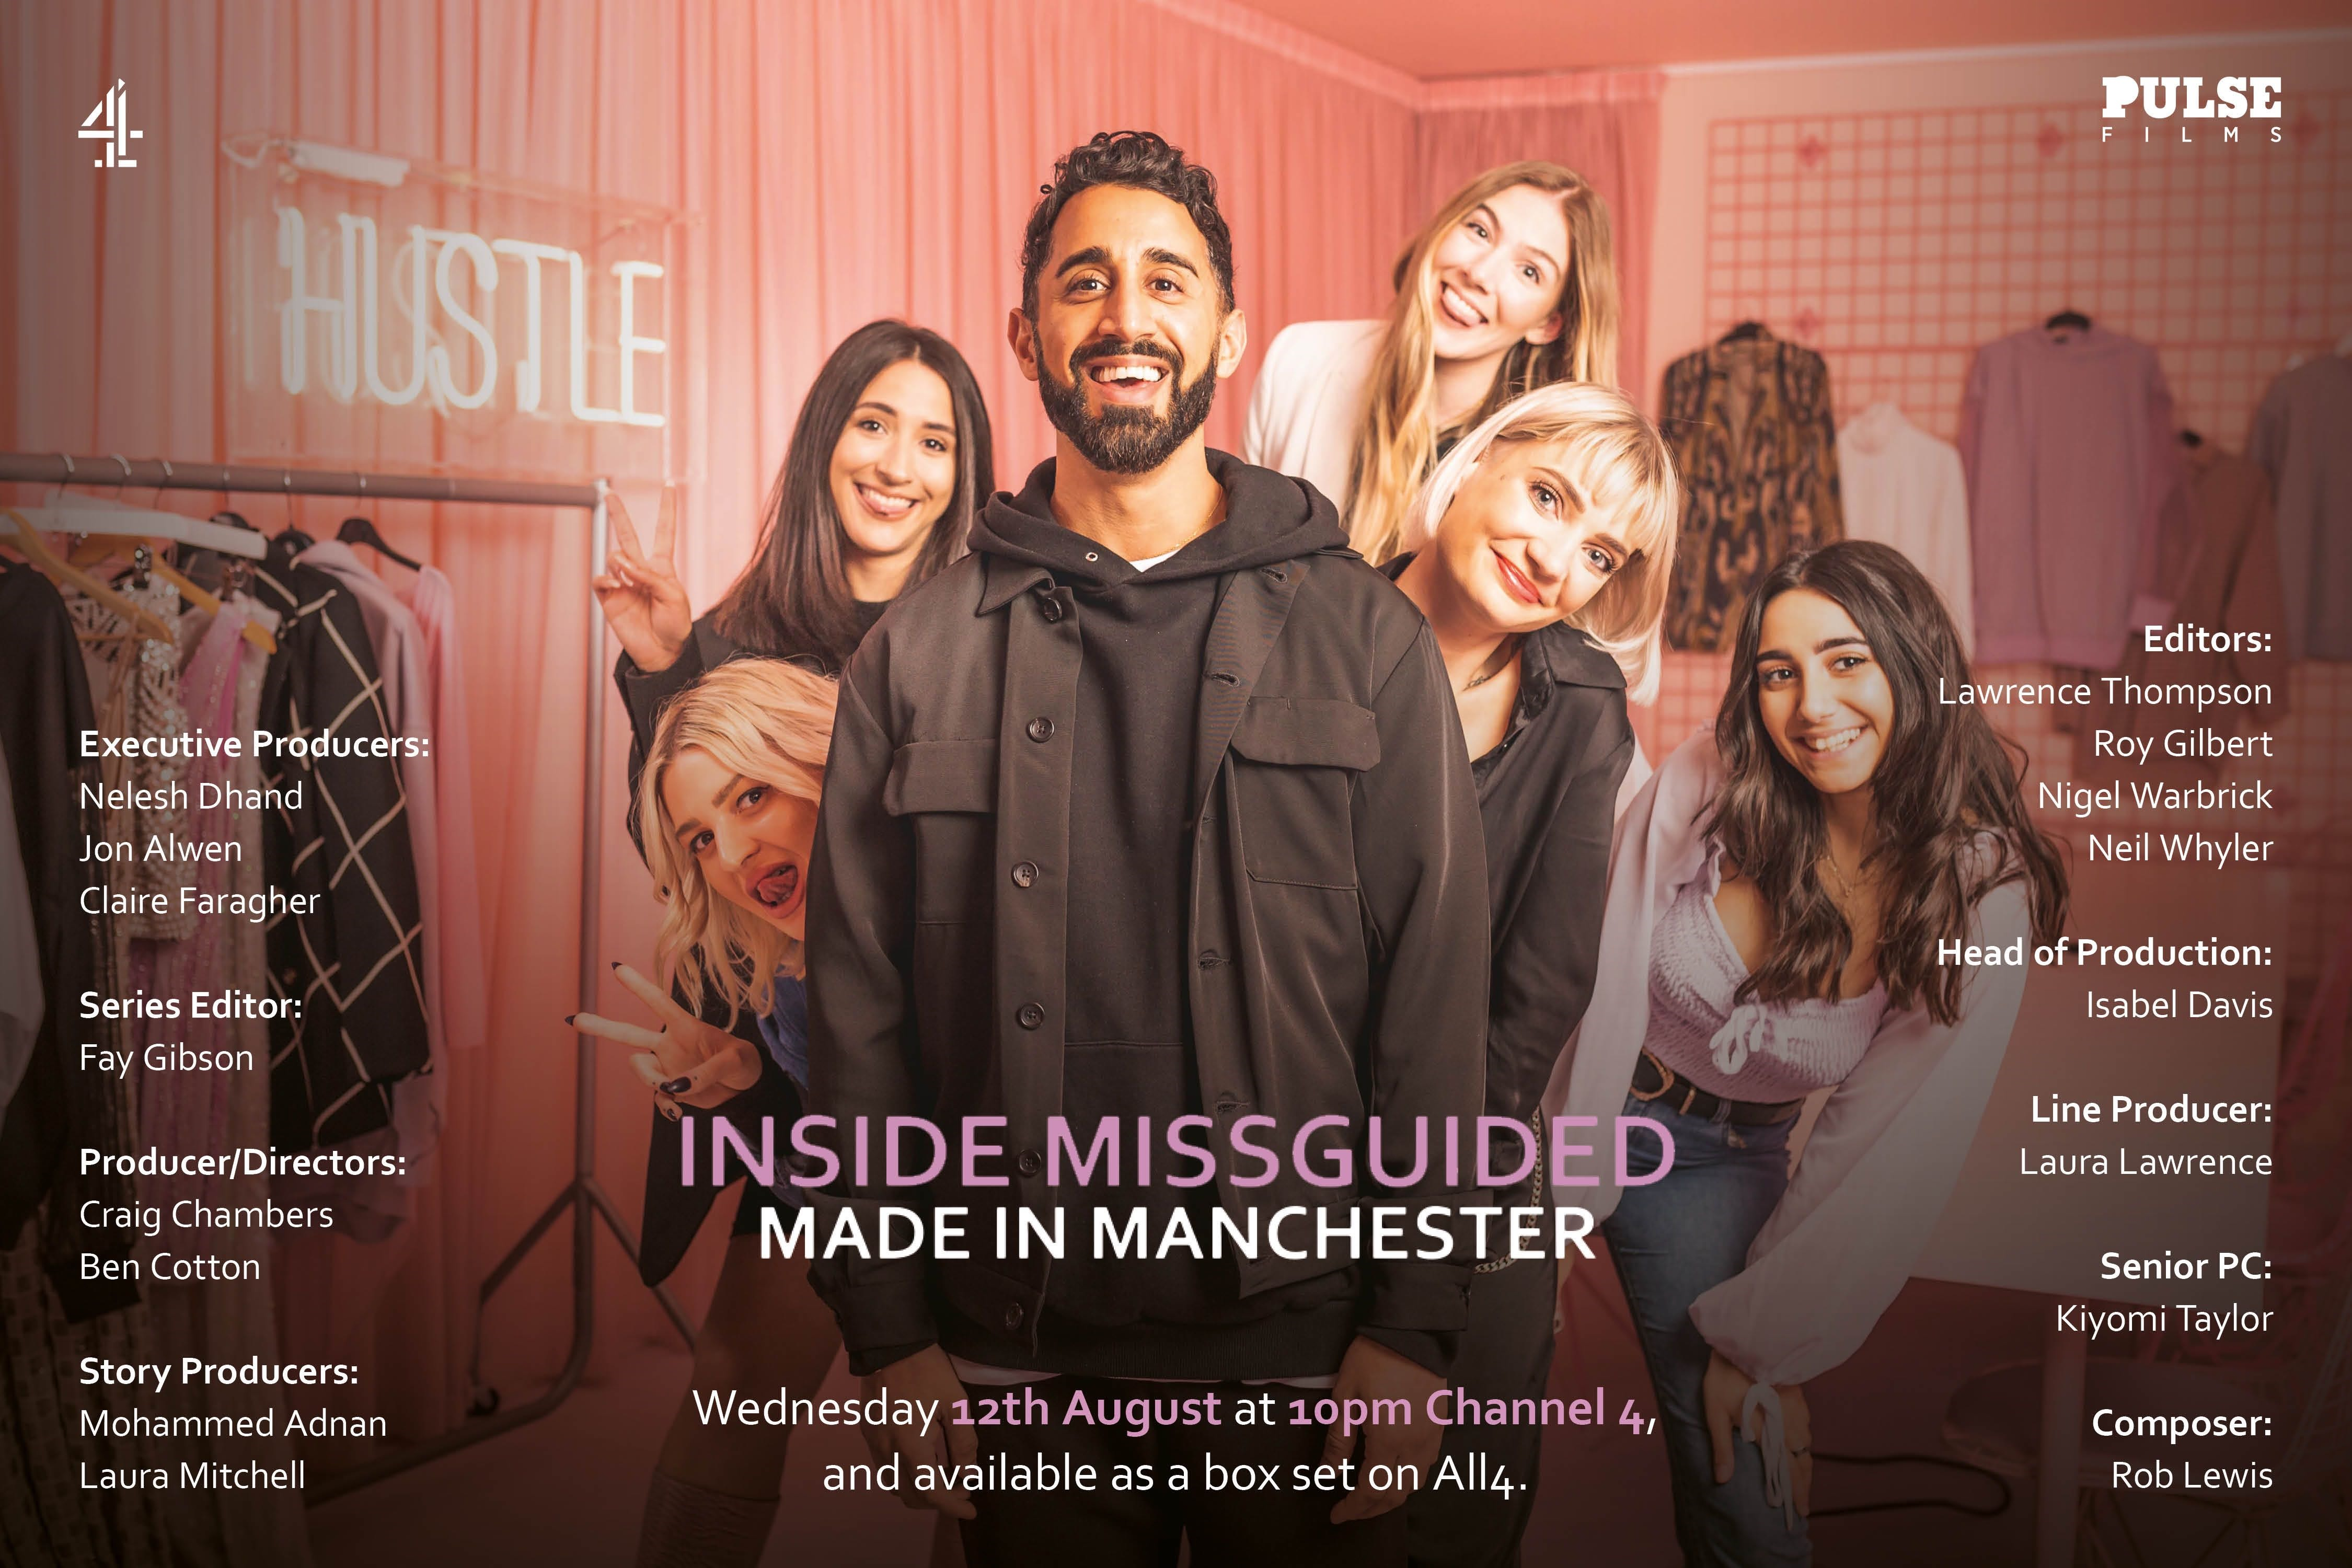 Inside Missguided: Made in Manchester - Channel 4